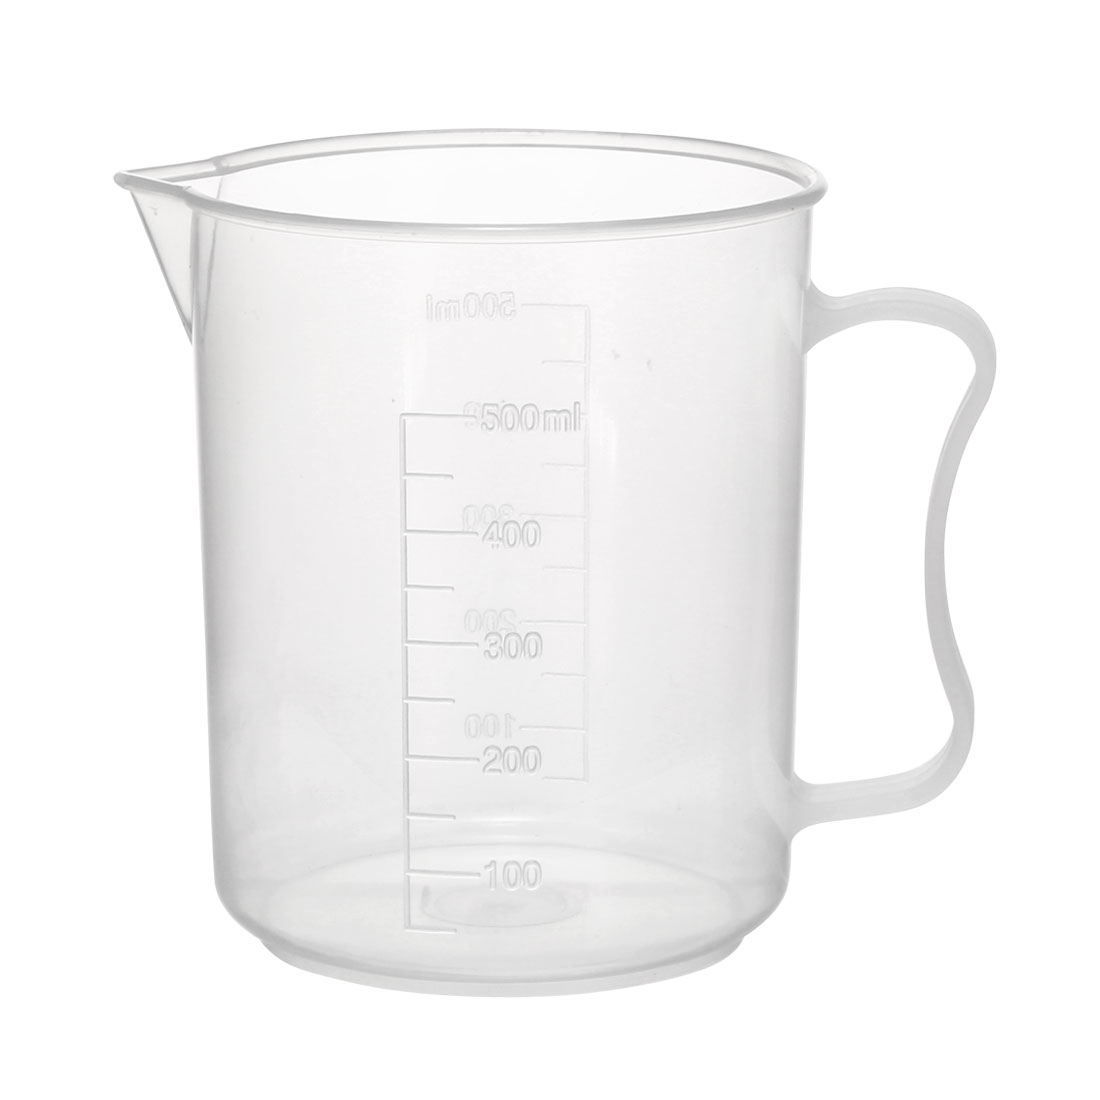 Kitchen Flour Sugar Liquid Measurement Beaker Measuring Cup Mug 500ml